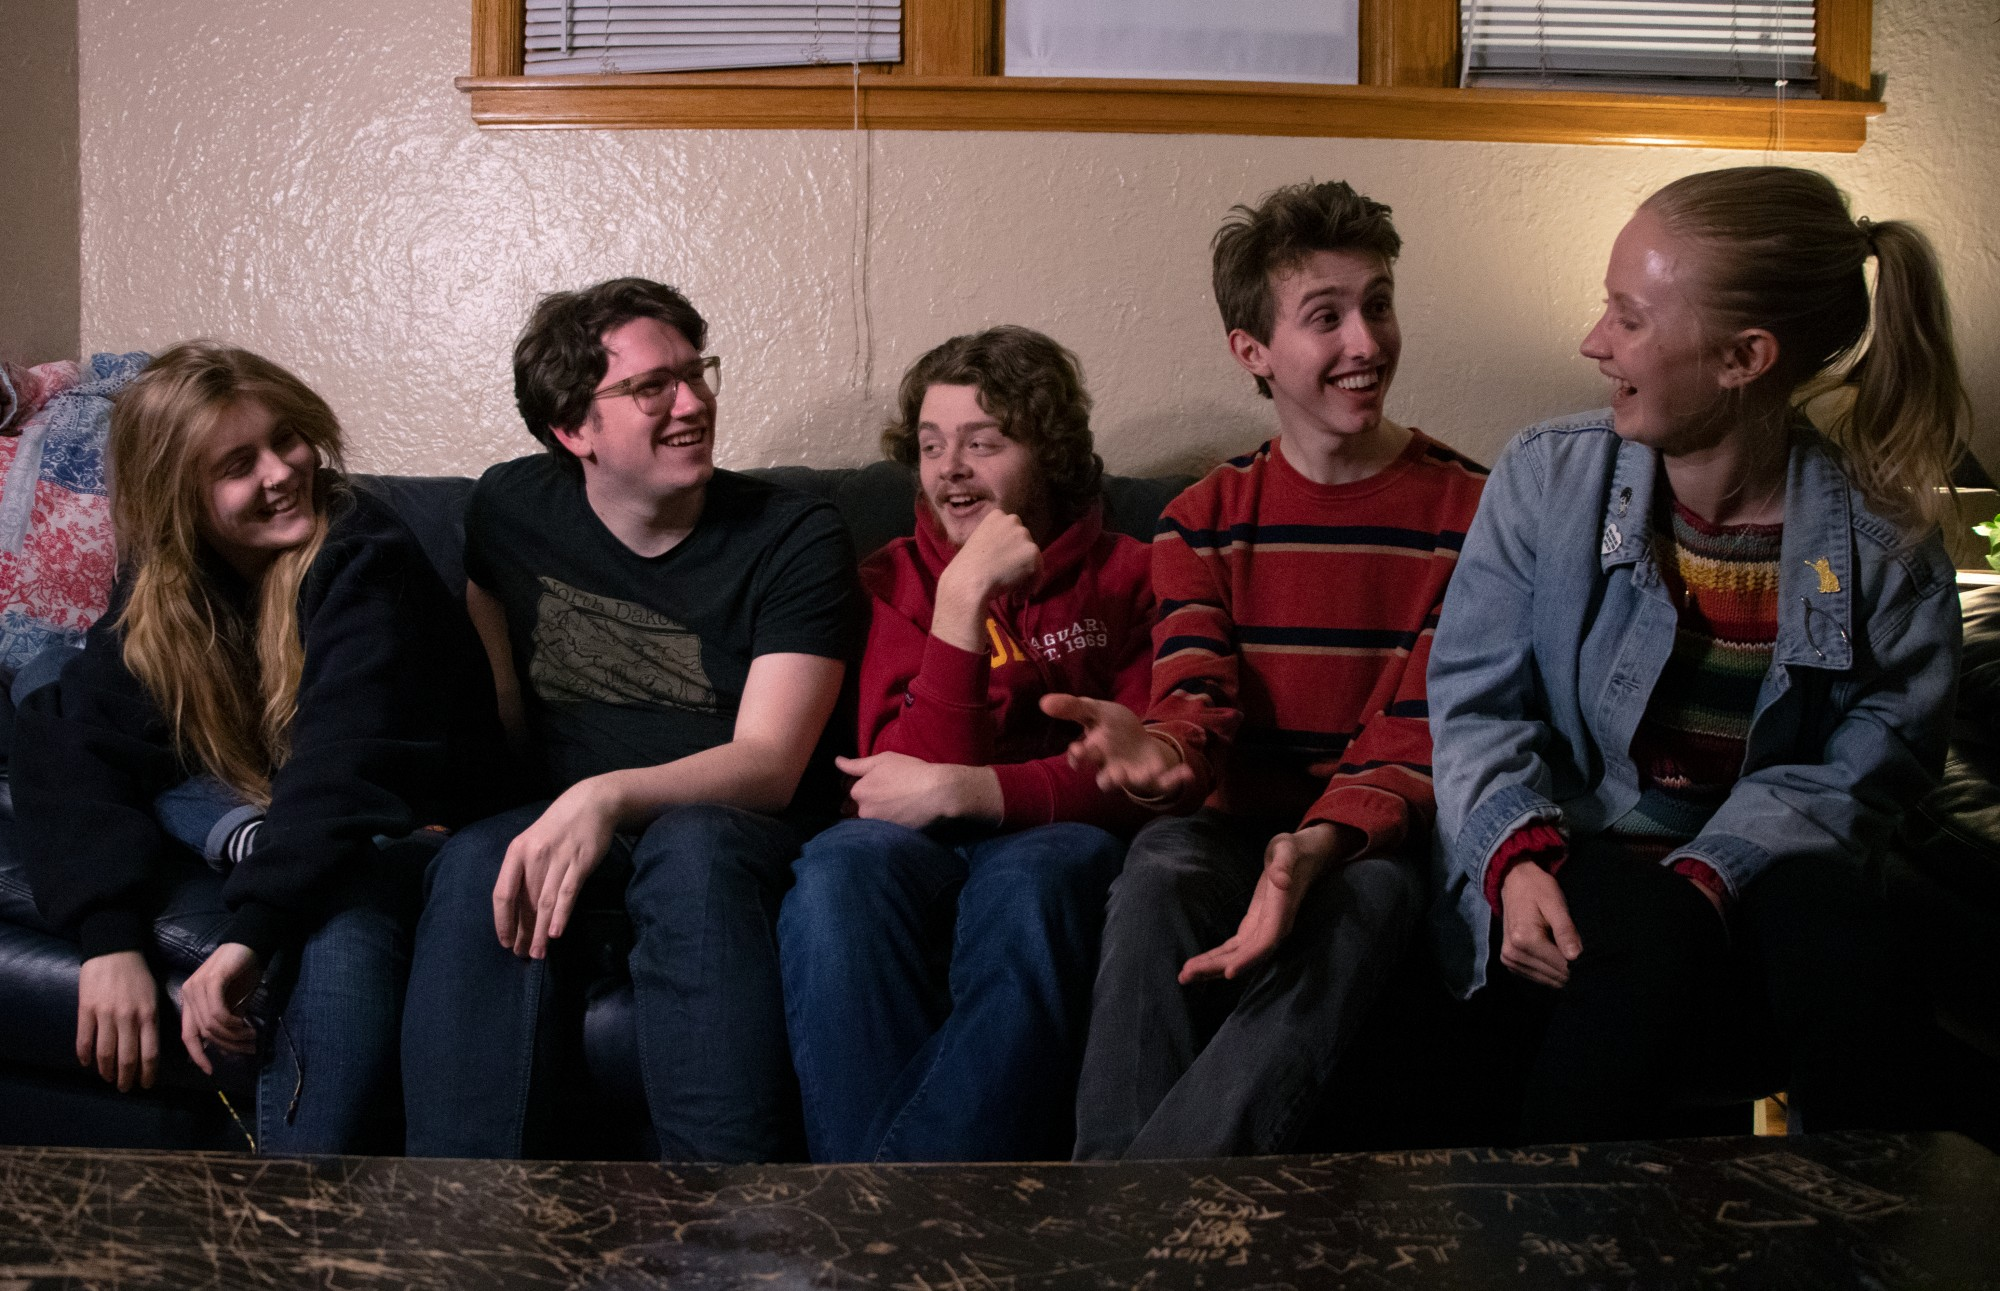 "From left, Izzy Bobby, Carter Ridl, Jacob Mechler, Henry Kueppers and coach Summer Freed of MN long form improv team ""Robot Family Band"" laugh while posing for a portrait before their team practice on Wednesday, March 4. The team won the Upper Midwest Regional Championship for long form improv, and is now advancing to nationals."